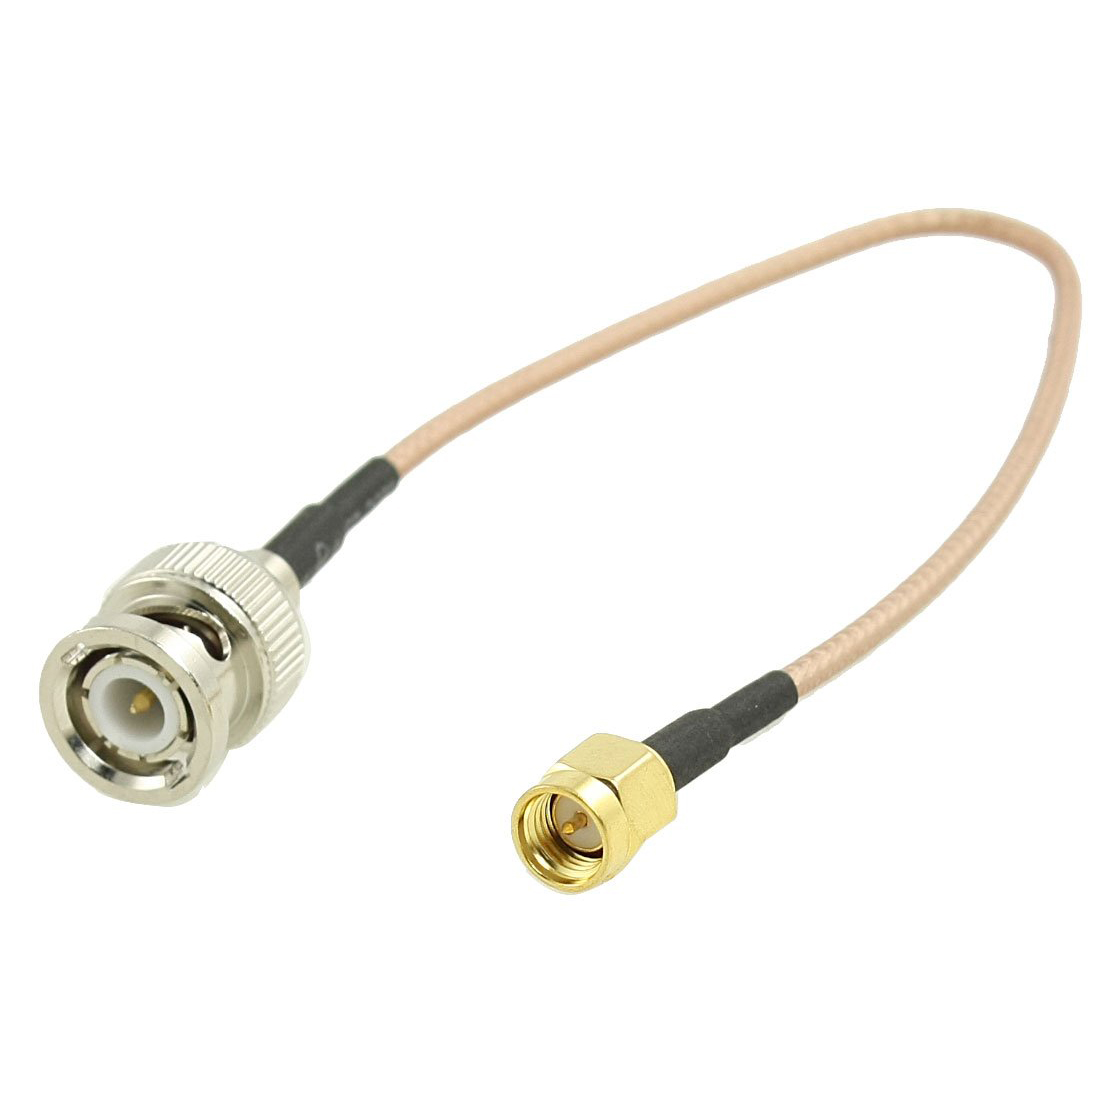 IMC Hot Gold-Plated BNC Male to SMA Male Connector Coaxial Cable 8.8 areyourshop hot sale 50 pcs musical audio speaker cable wire 4mm gold plated banana plug connector